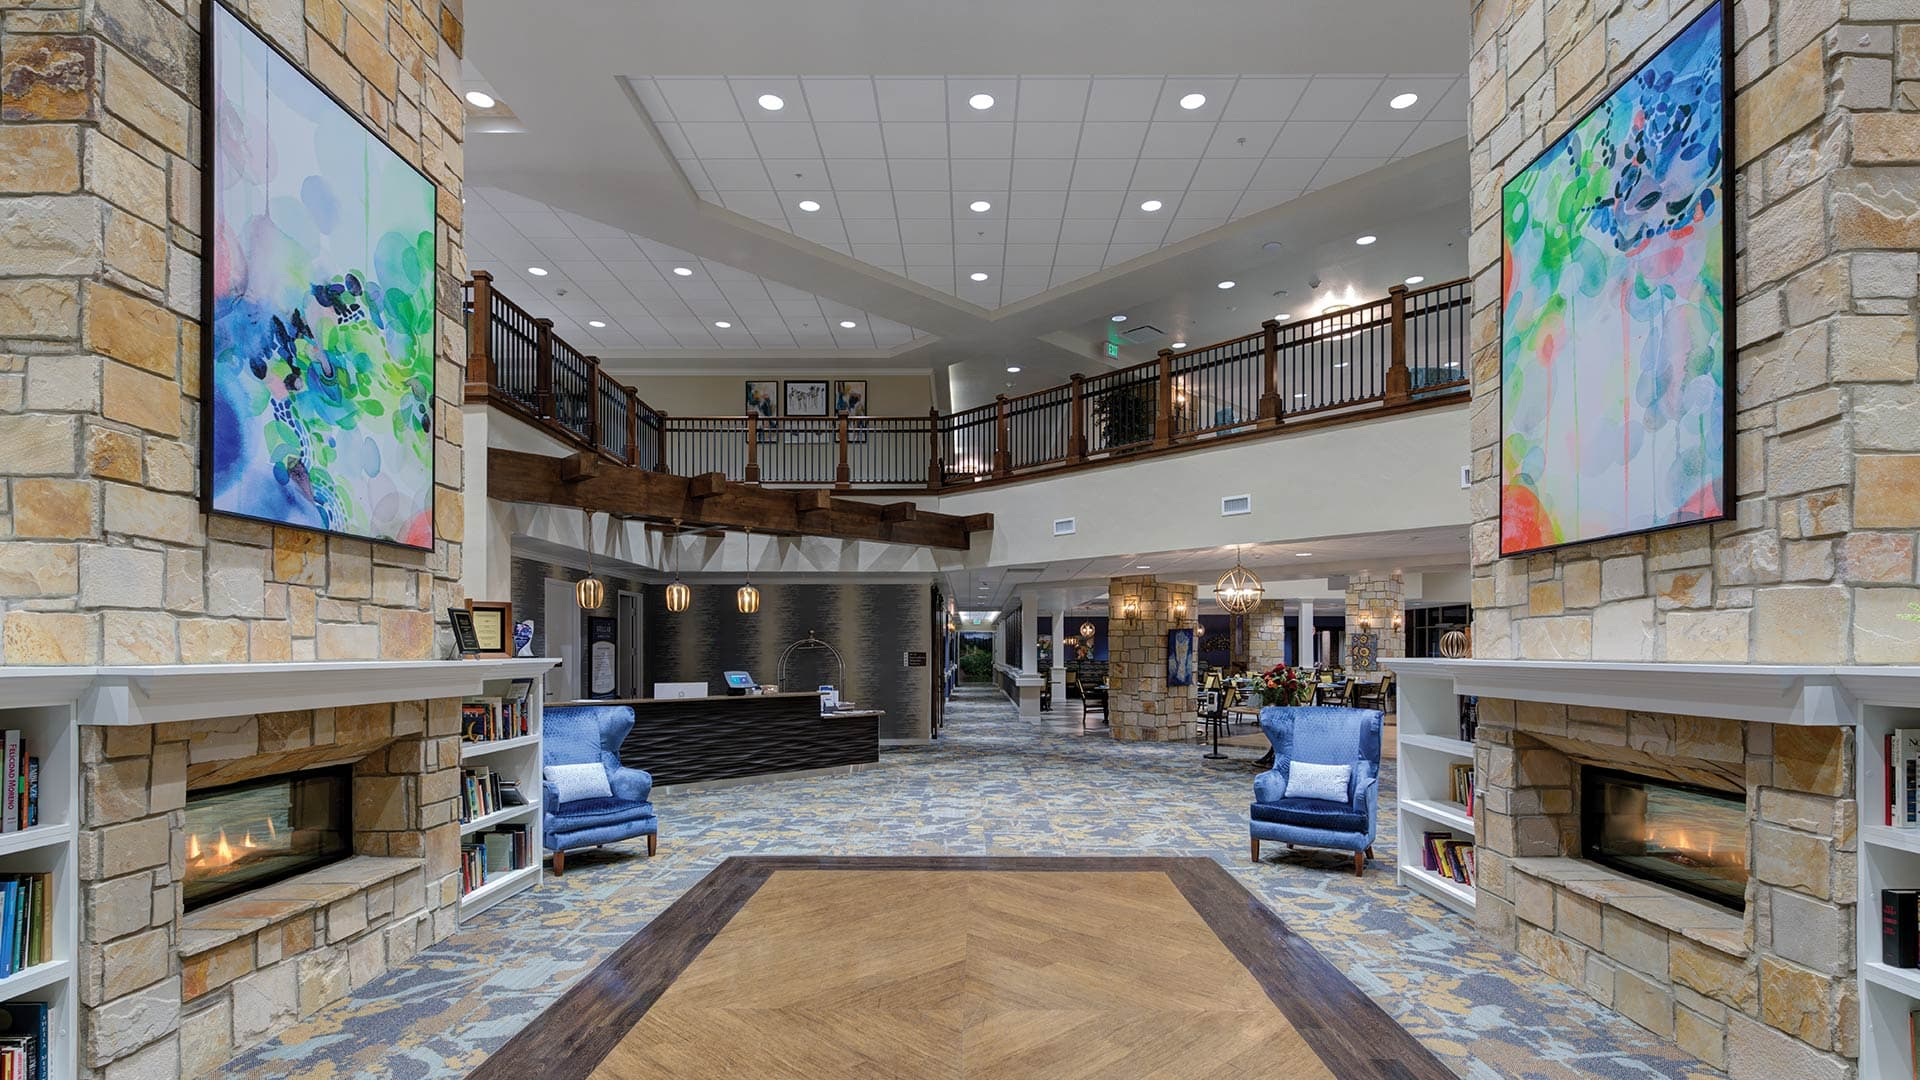 Creekside Assisted Senior Living Acuity Brands Inspiration Board Residential Featured Projects